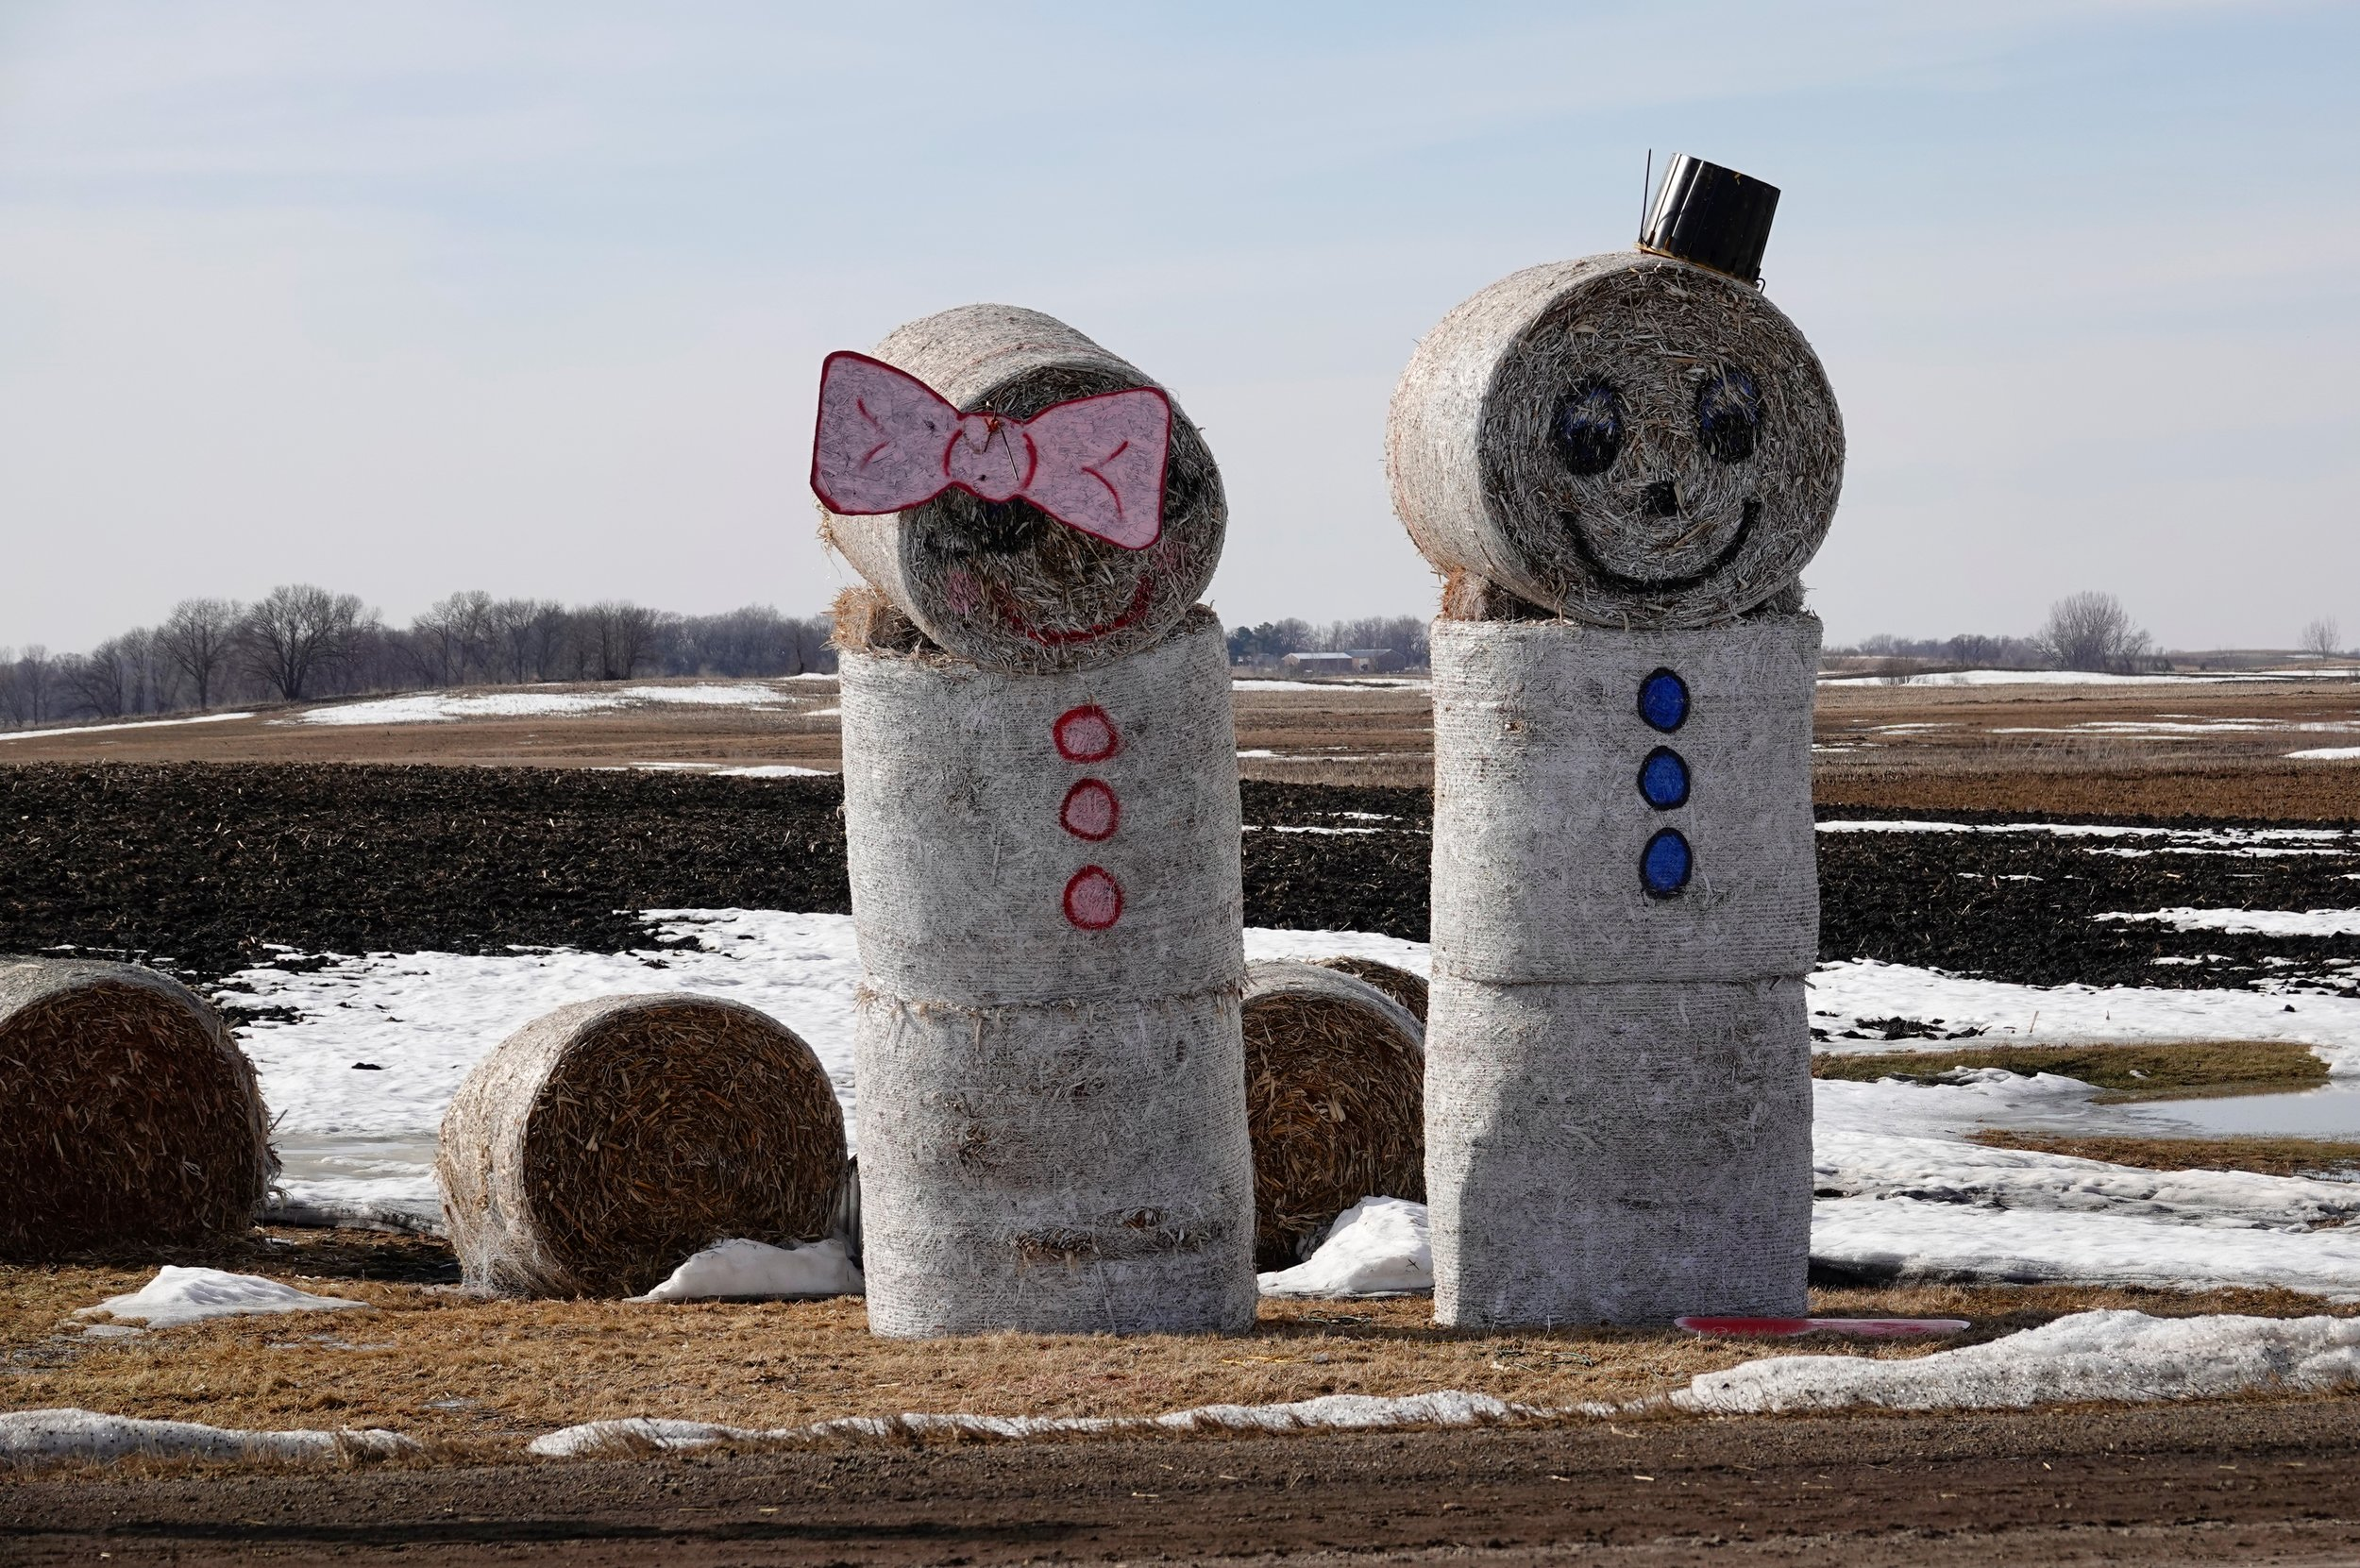 The Hay Bale Family seems happy.